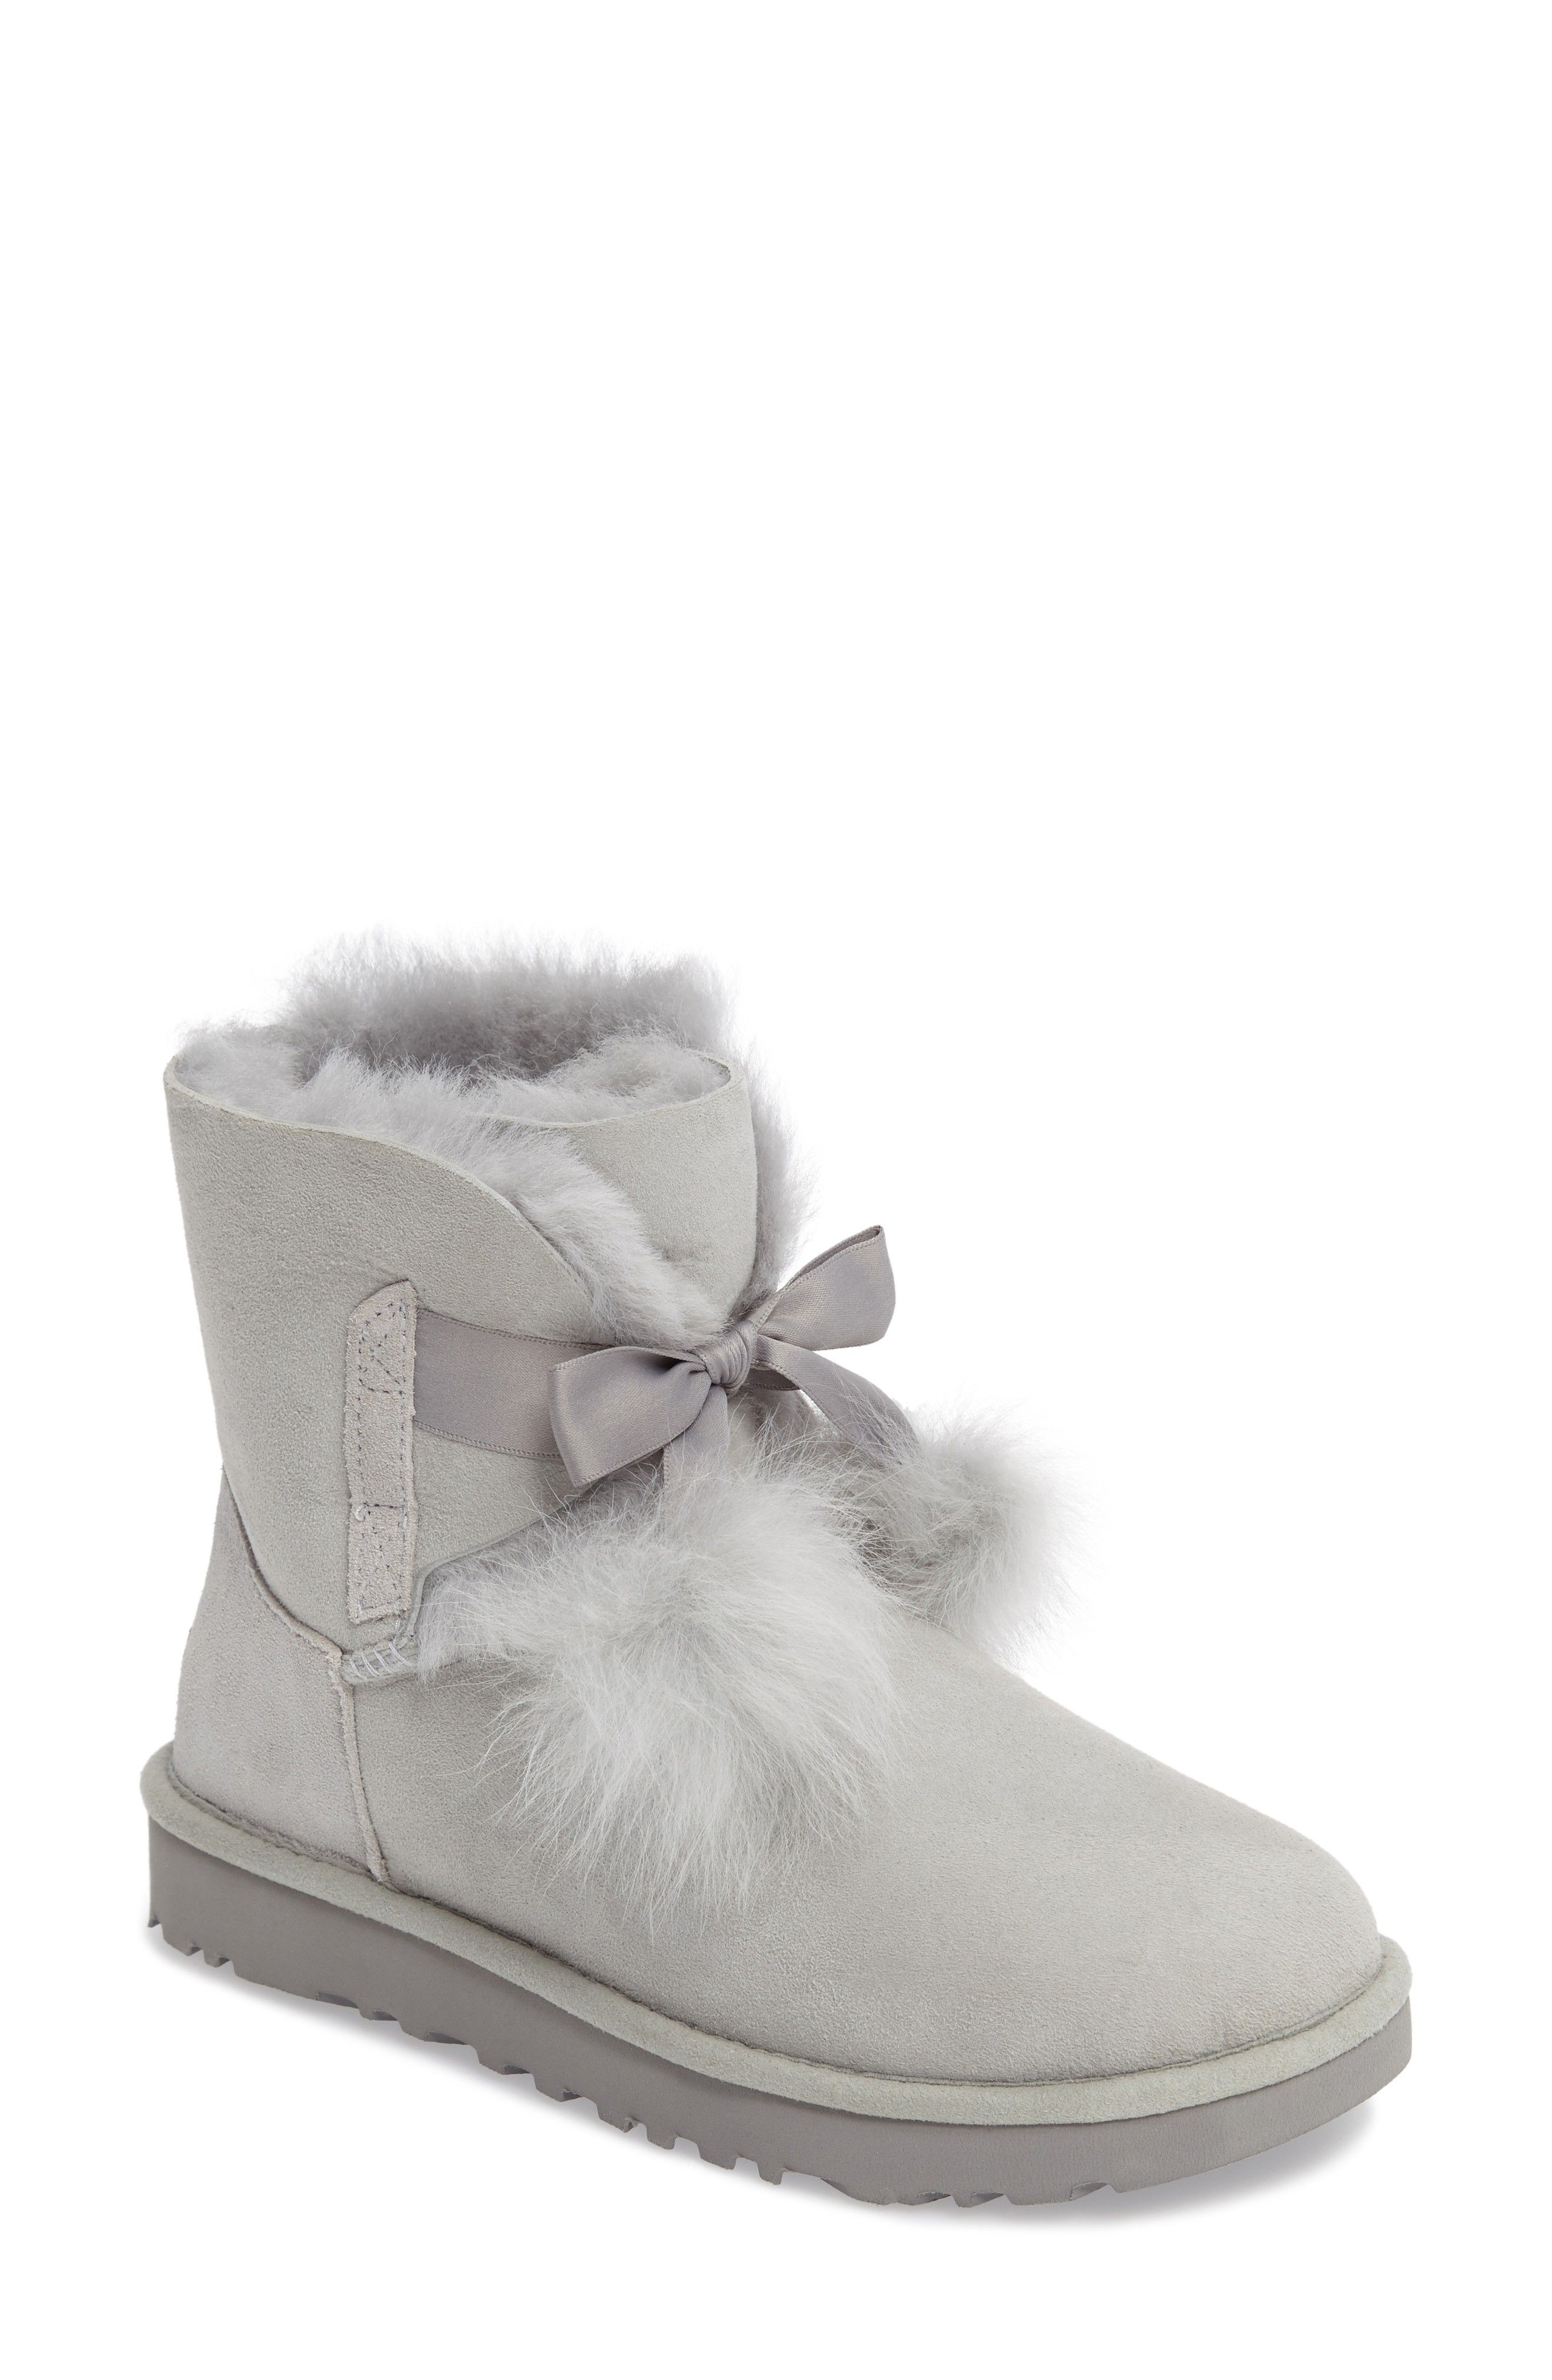 a714d35282e 2018 Holiday Gifts For Women | On My Shopping List | Ugg boots, Uggs ...